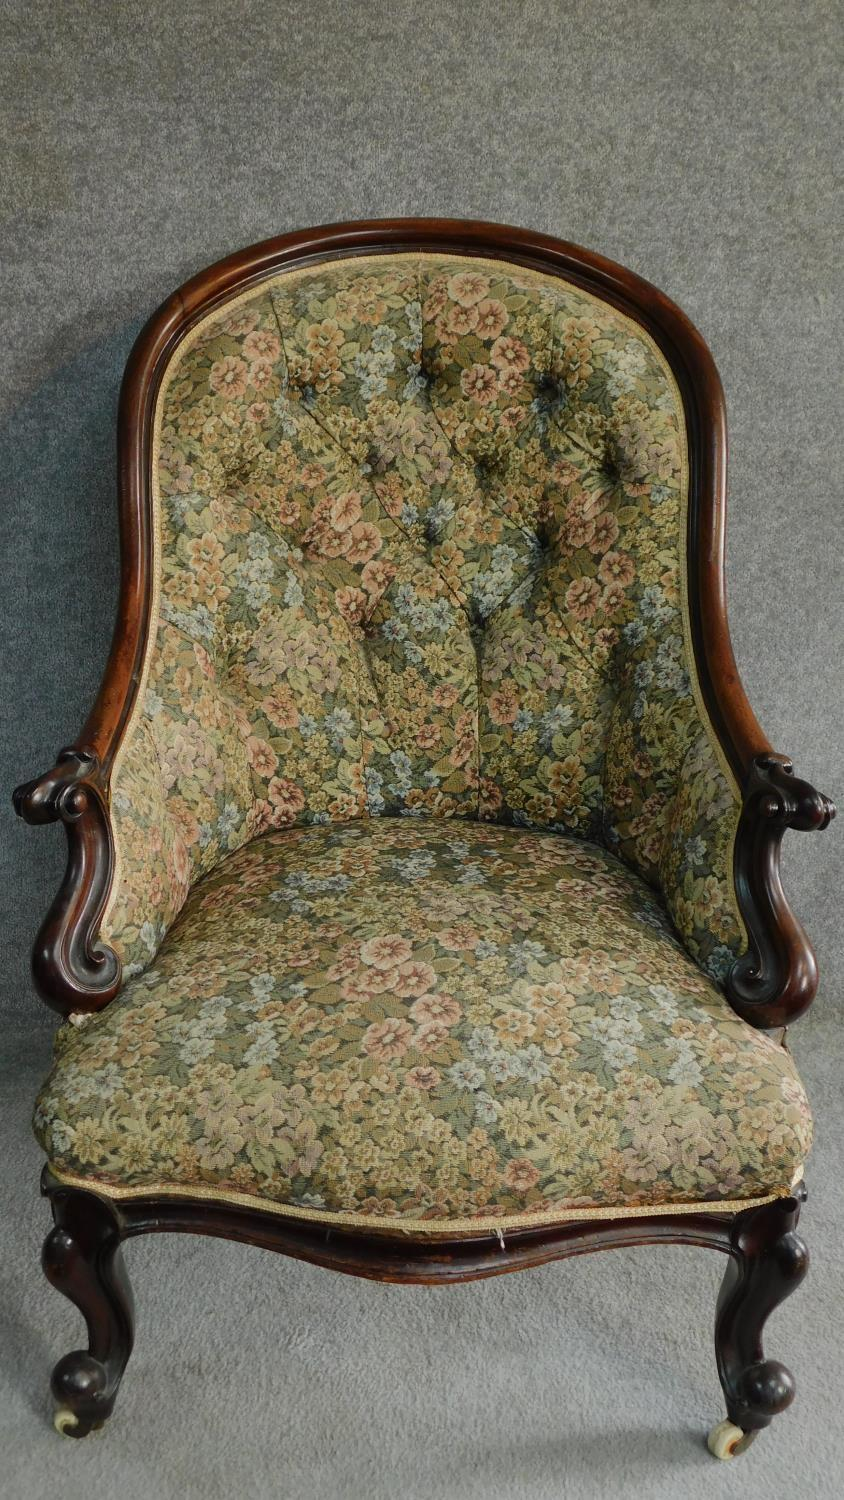 A Victorian mahogany framed floral upholstered buttoned back armchair raised on carved cabriole - Image 2 of 6